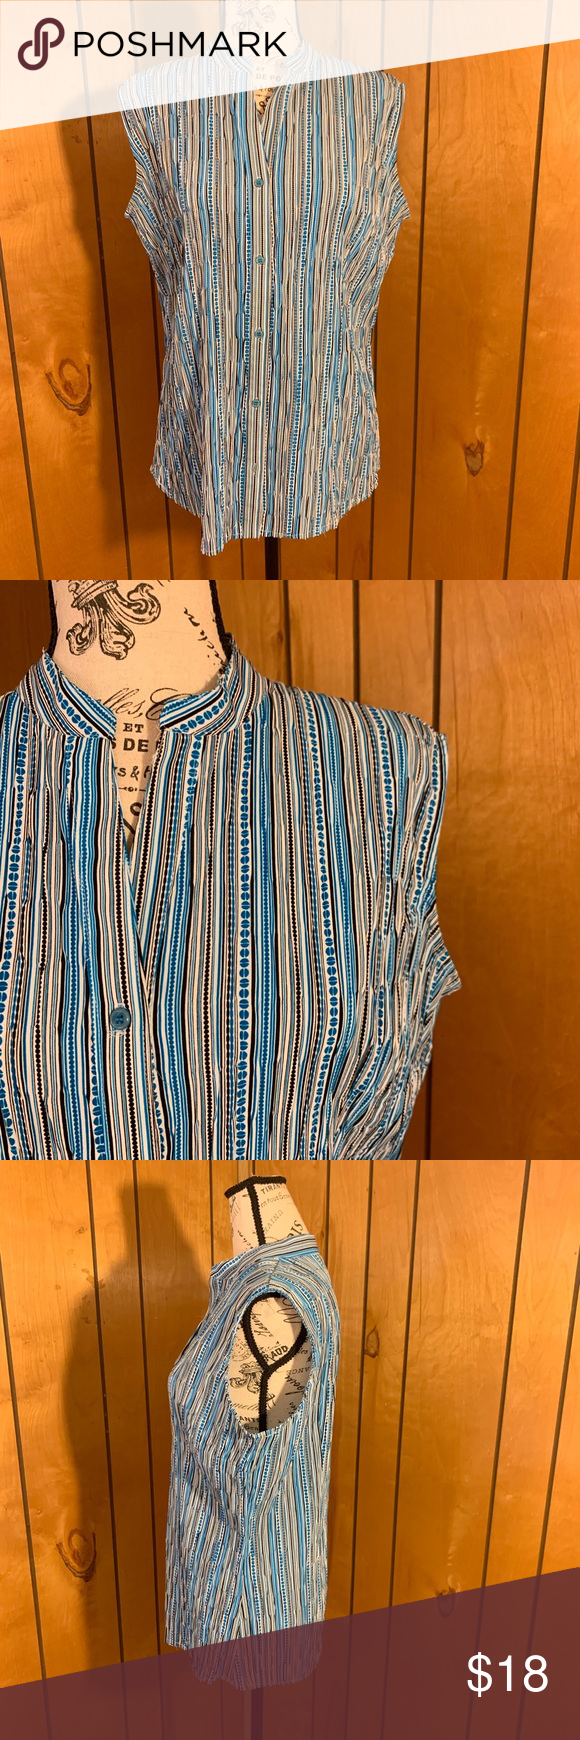 East 5th Sleeveless Button Down Shirt Excellent Preowned Condition Women S East 5th Sleeveless Button Down Size Lar With Images Clothes Design Button Down Shirt Sleeveless